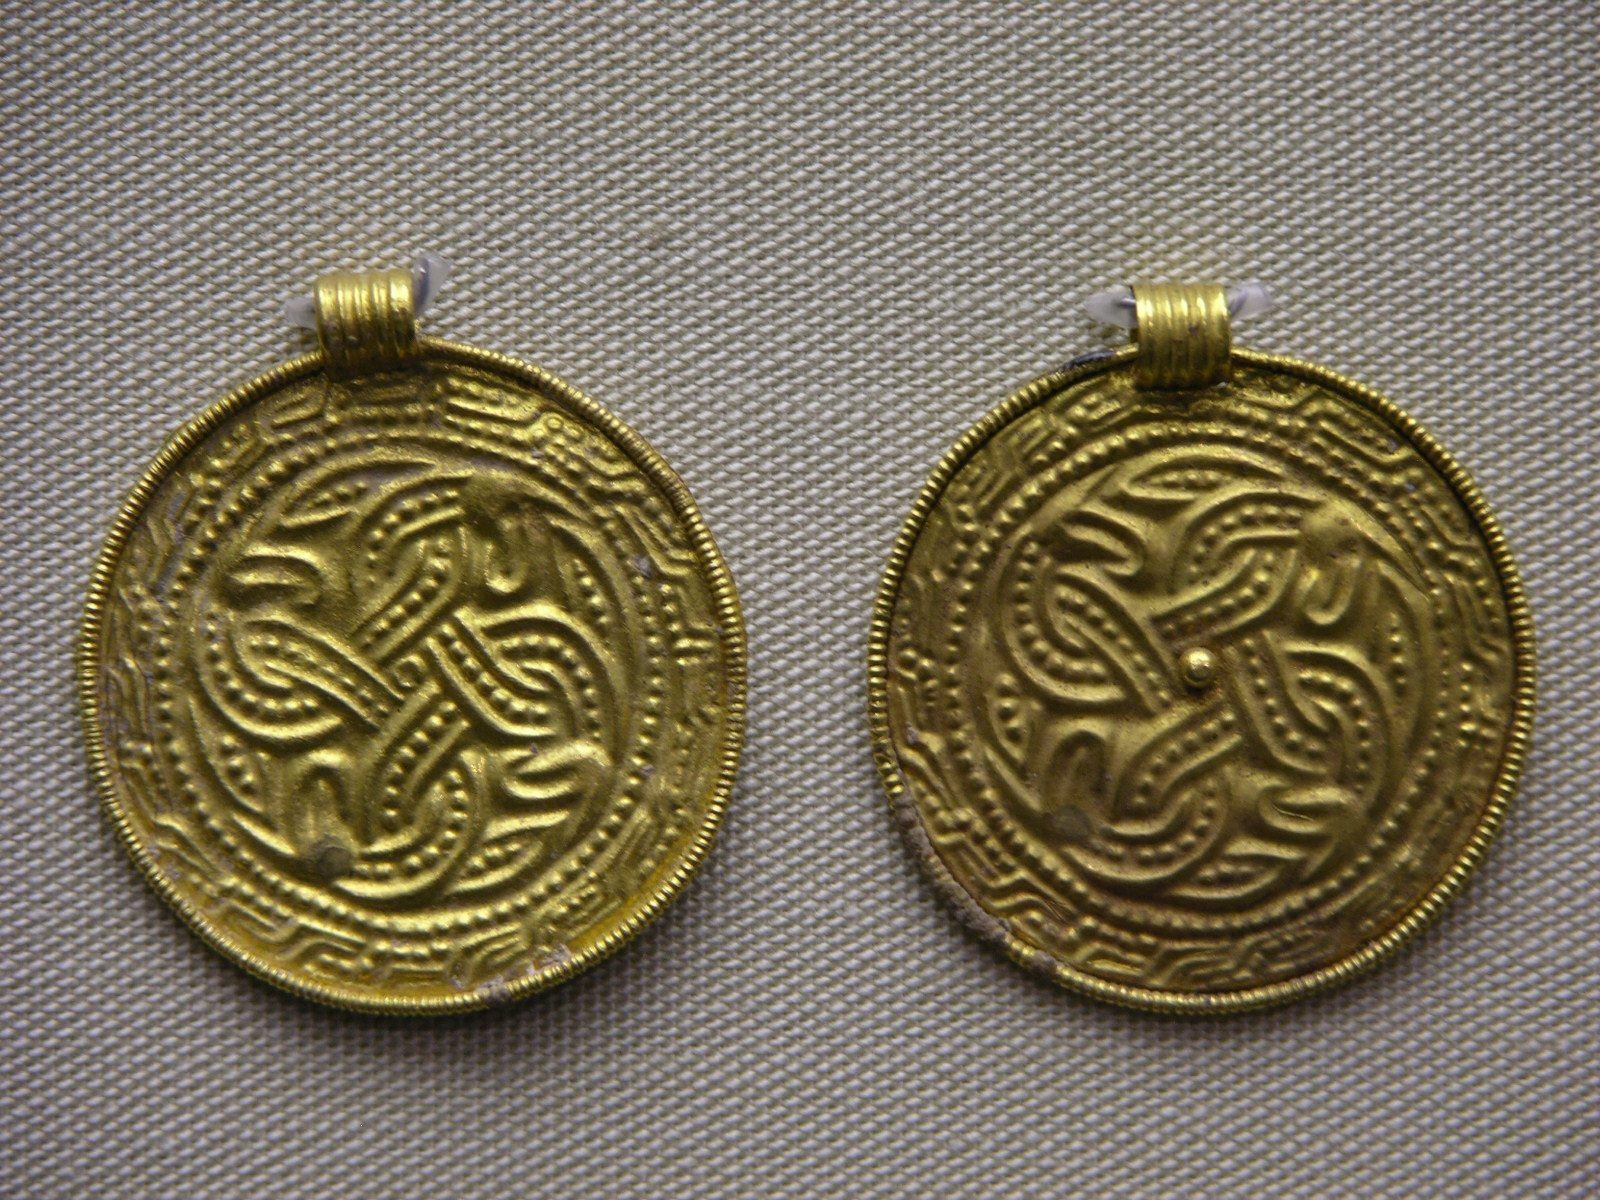 British museum early medieval europe cabinet 42 germanic and viking ornament photographs - Cabinet anglo saxon paris ...